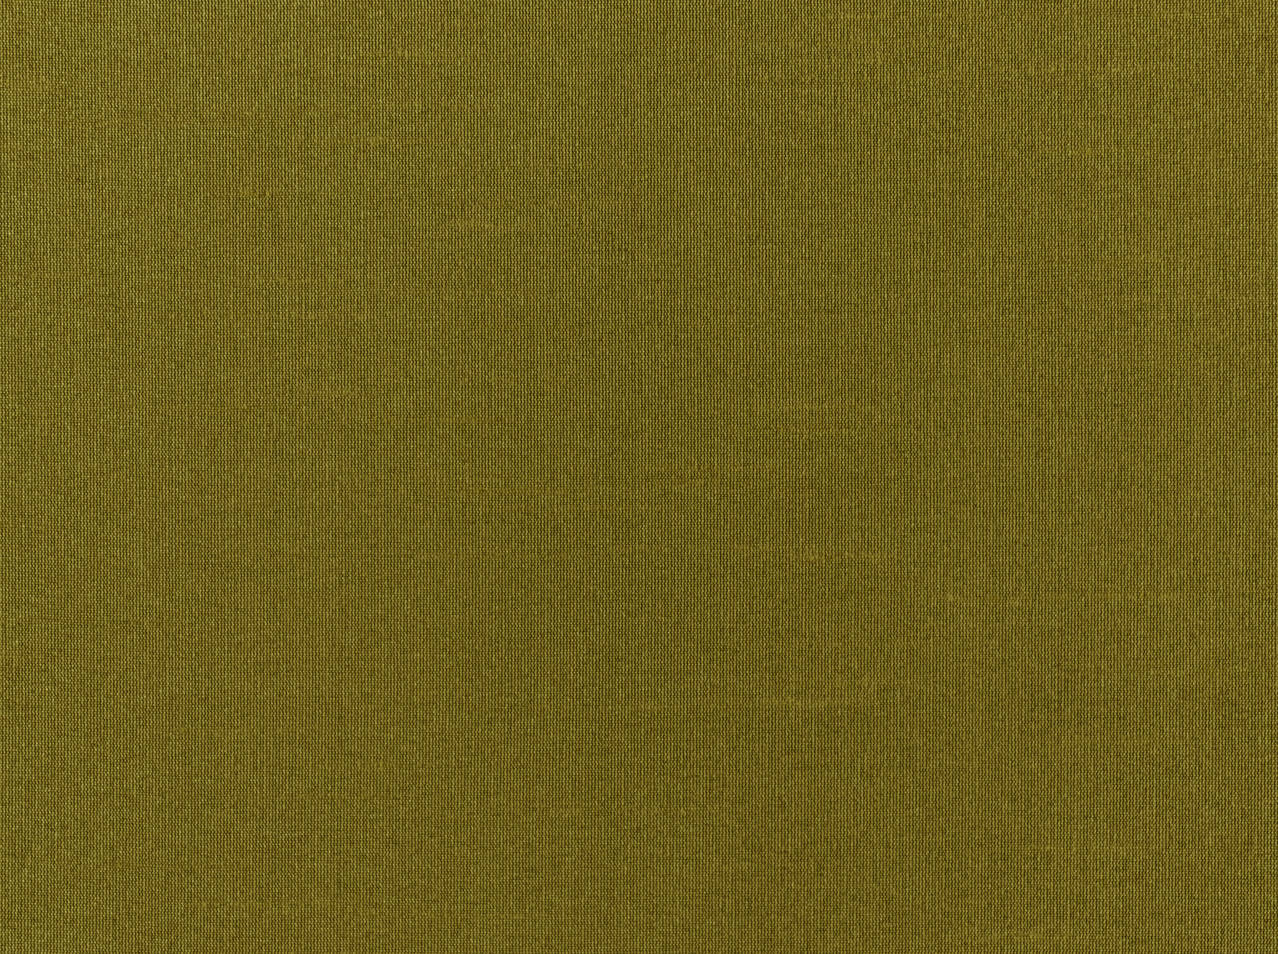 Covington Contract Products Color Green Aristocrat Golden